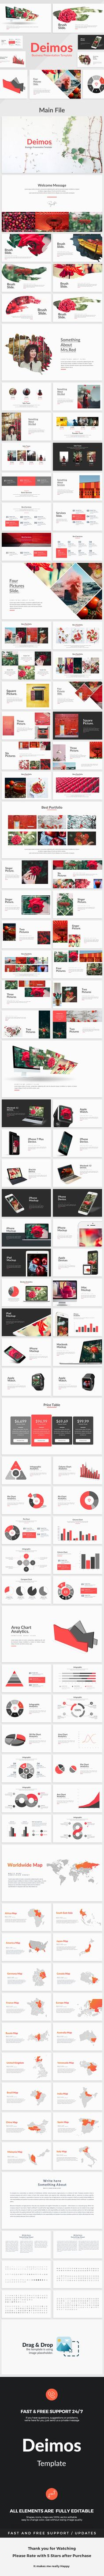 bizz plus - business presentation template (powerpoint templates, Presentation templates